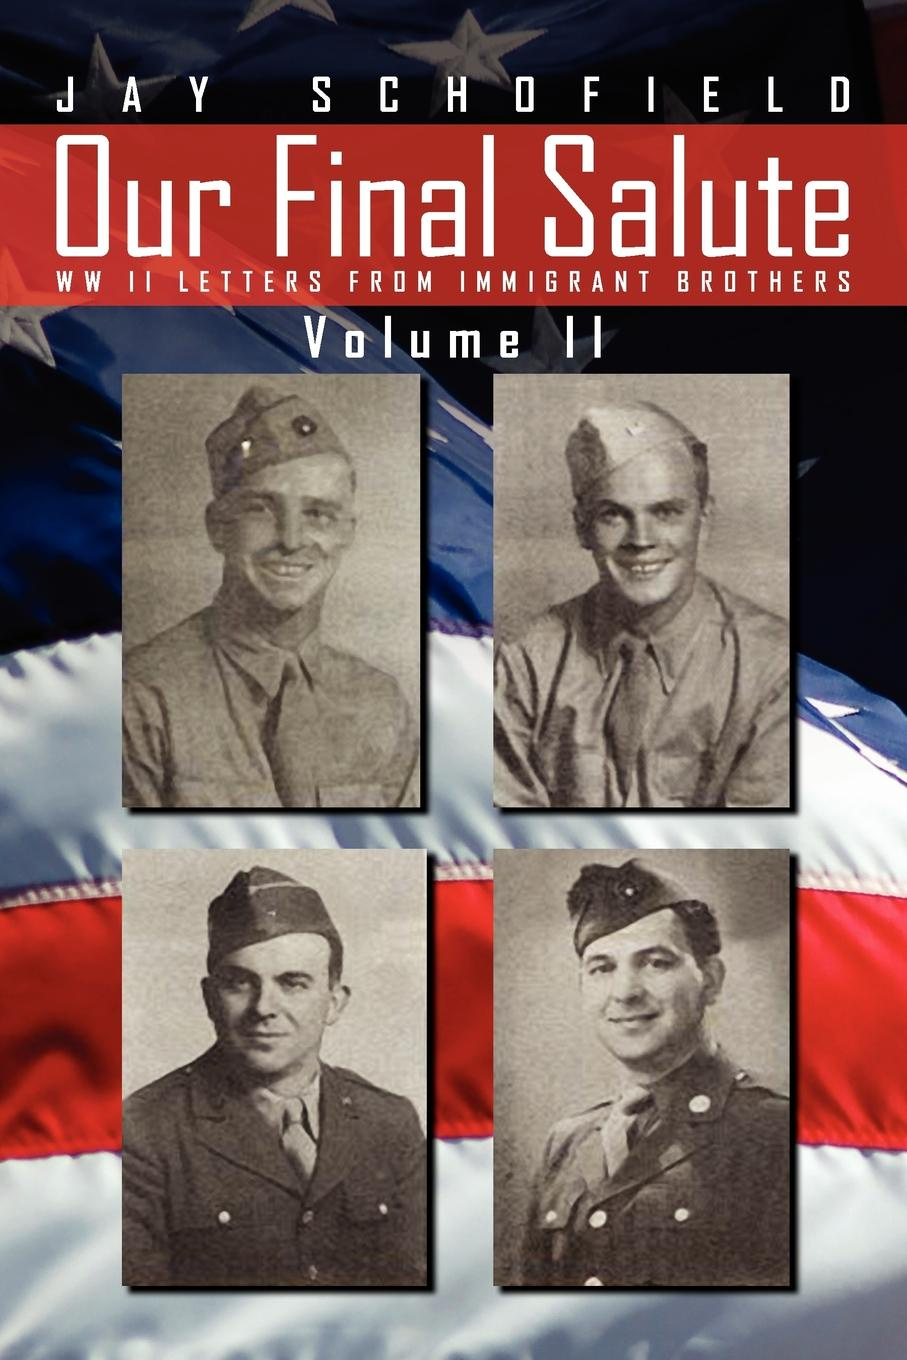 Jay Schofield Our Final Salute. WW II Letters from Immigrant Brothers Volume II brian koralewski doctrinal quotes volume ii